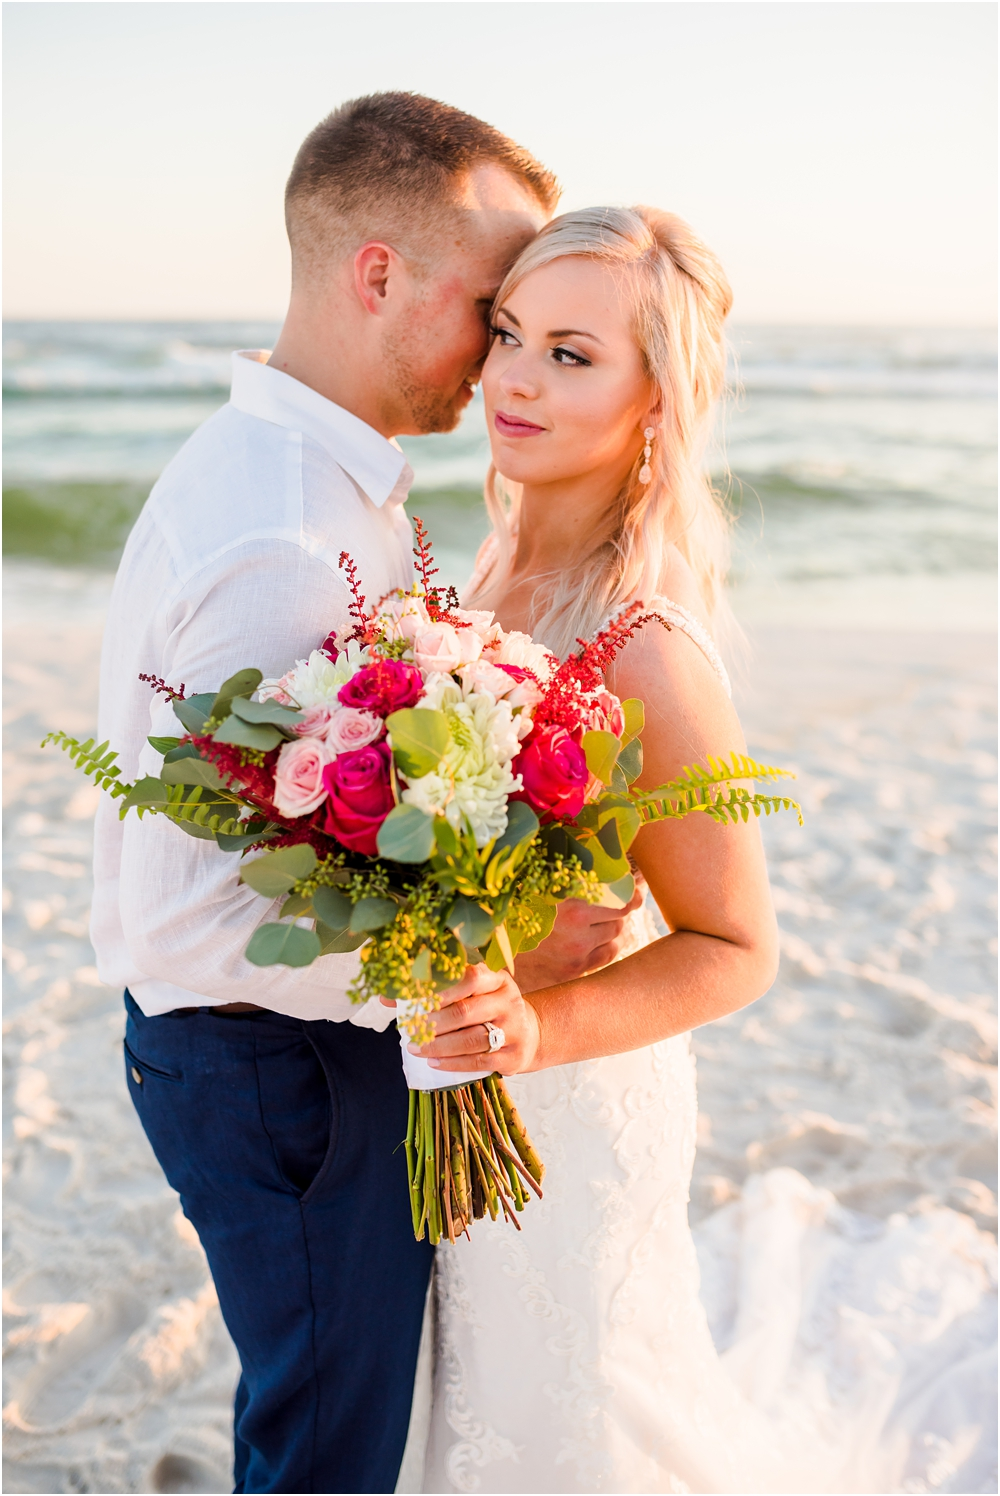 mcglothlin-wedding-kiersten-stevenson-photography-30a-panama-city-beach-dothan-tallahassee-(104-of-145).jpg